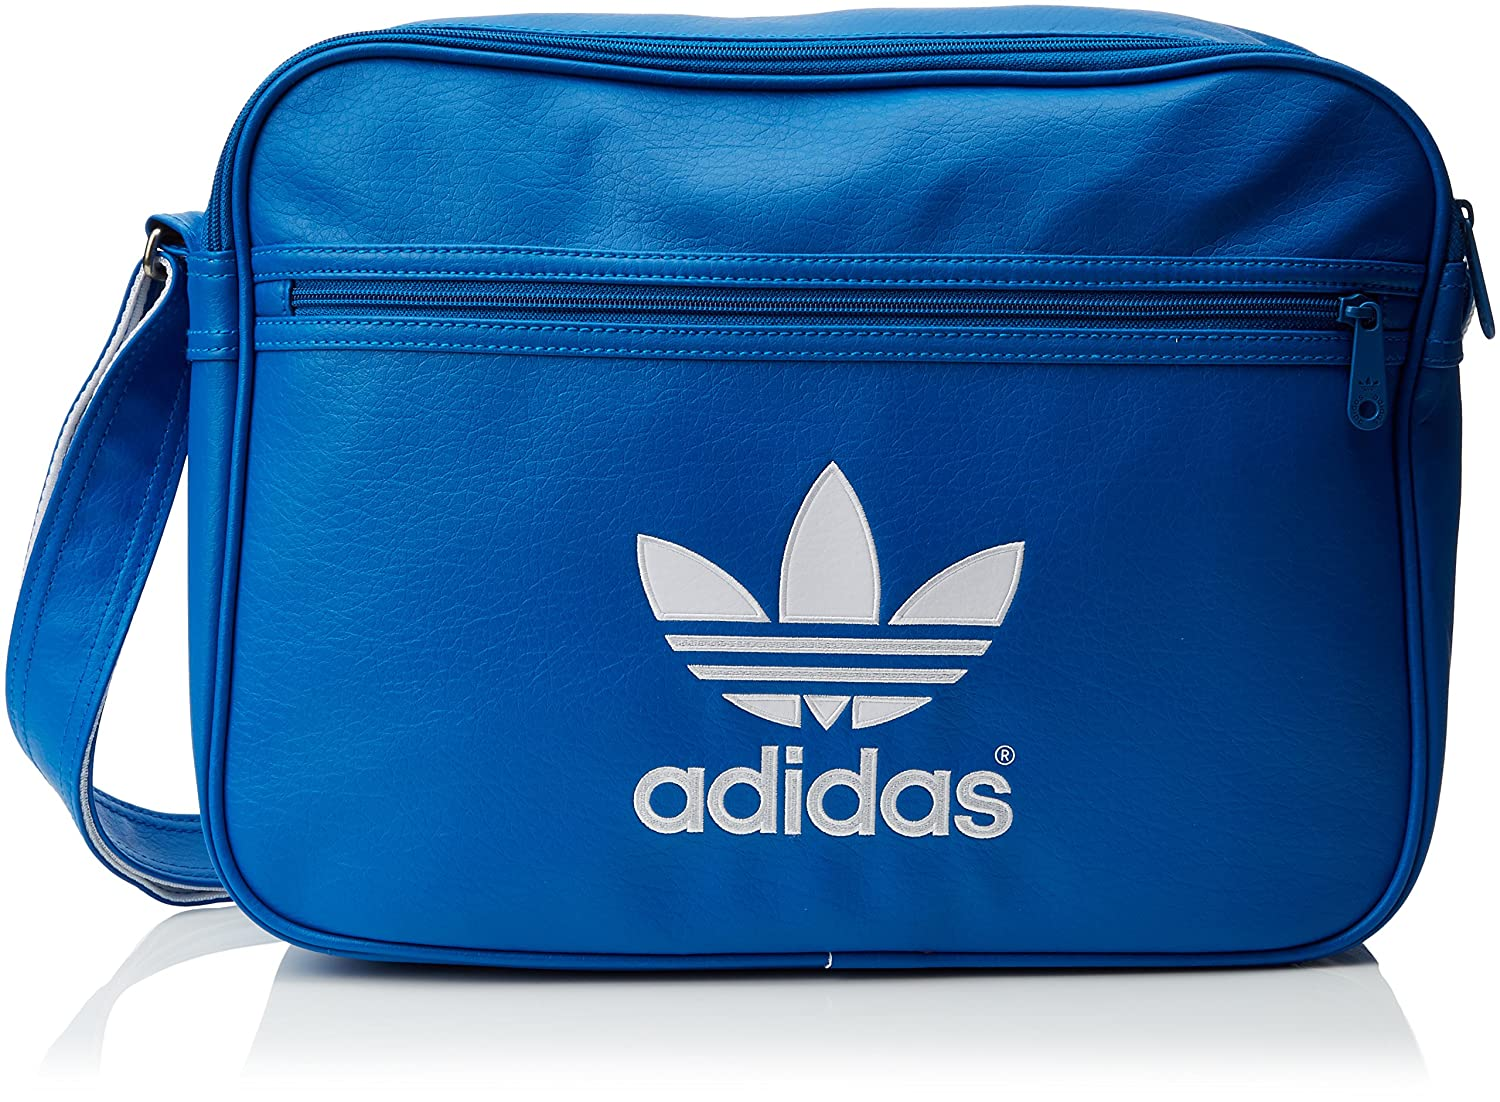 adidas Airline Adicolor Bag One Size AJ8204